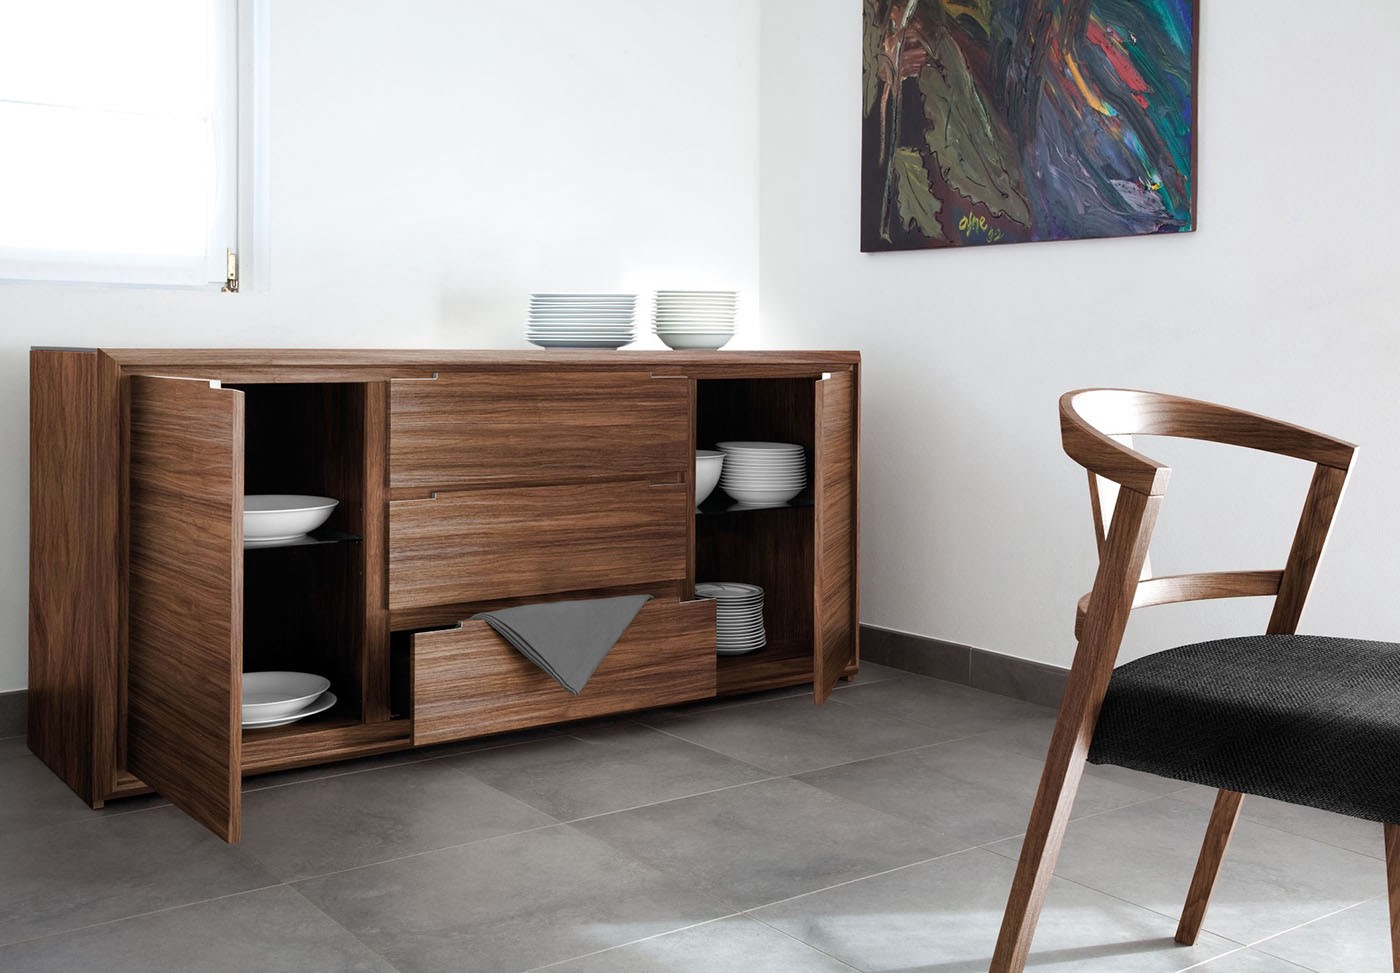 type of furniture wood. Different Types Of Wood Have Features, Which Are Well-suited For One Type Furniture Or Another.